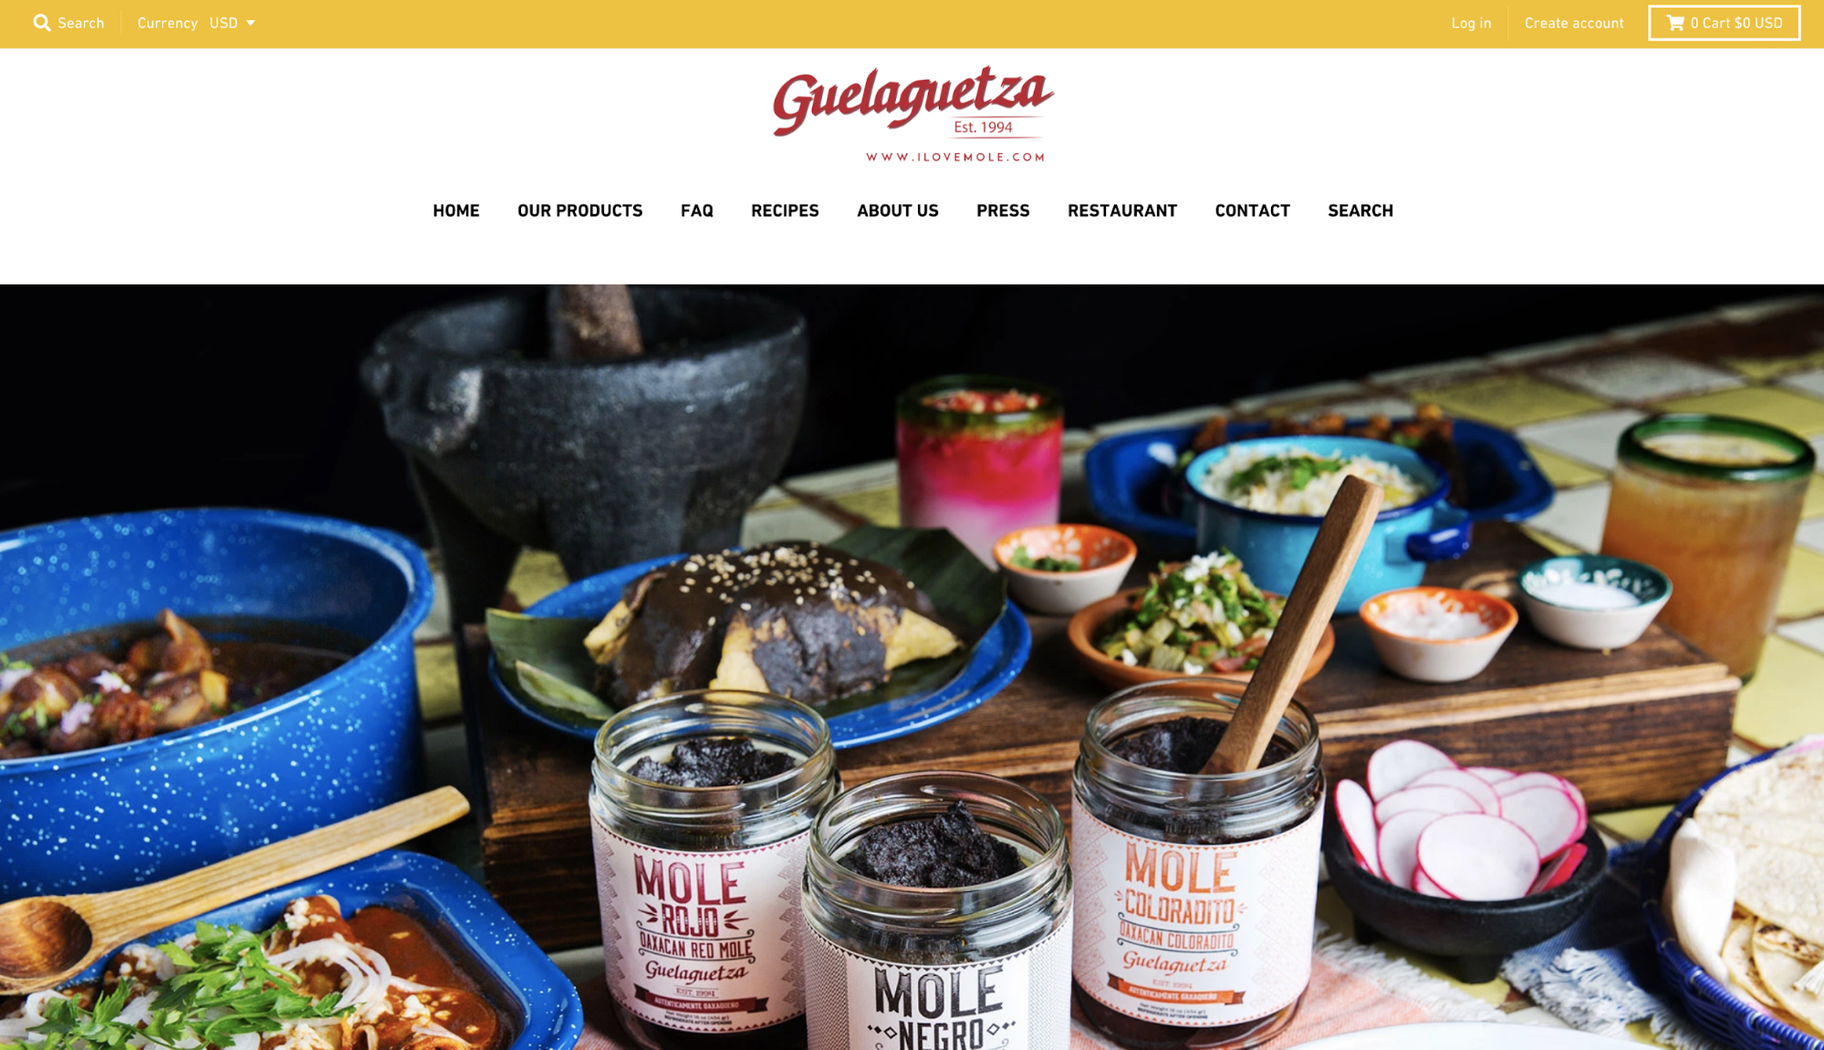 Small Business Website Example: Guelaguetza